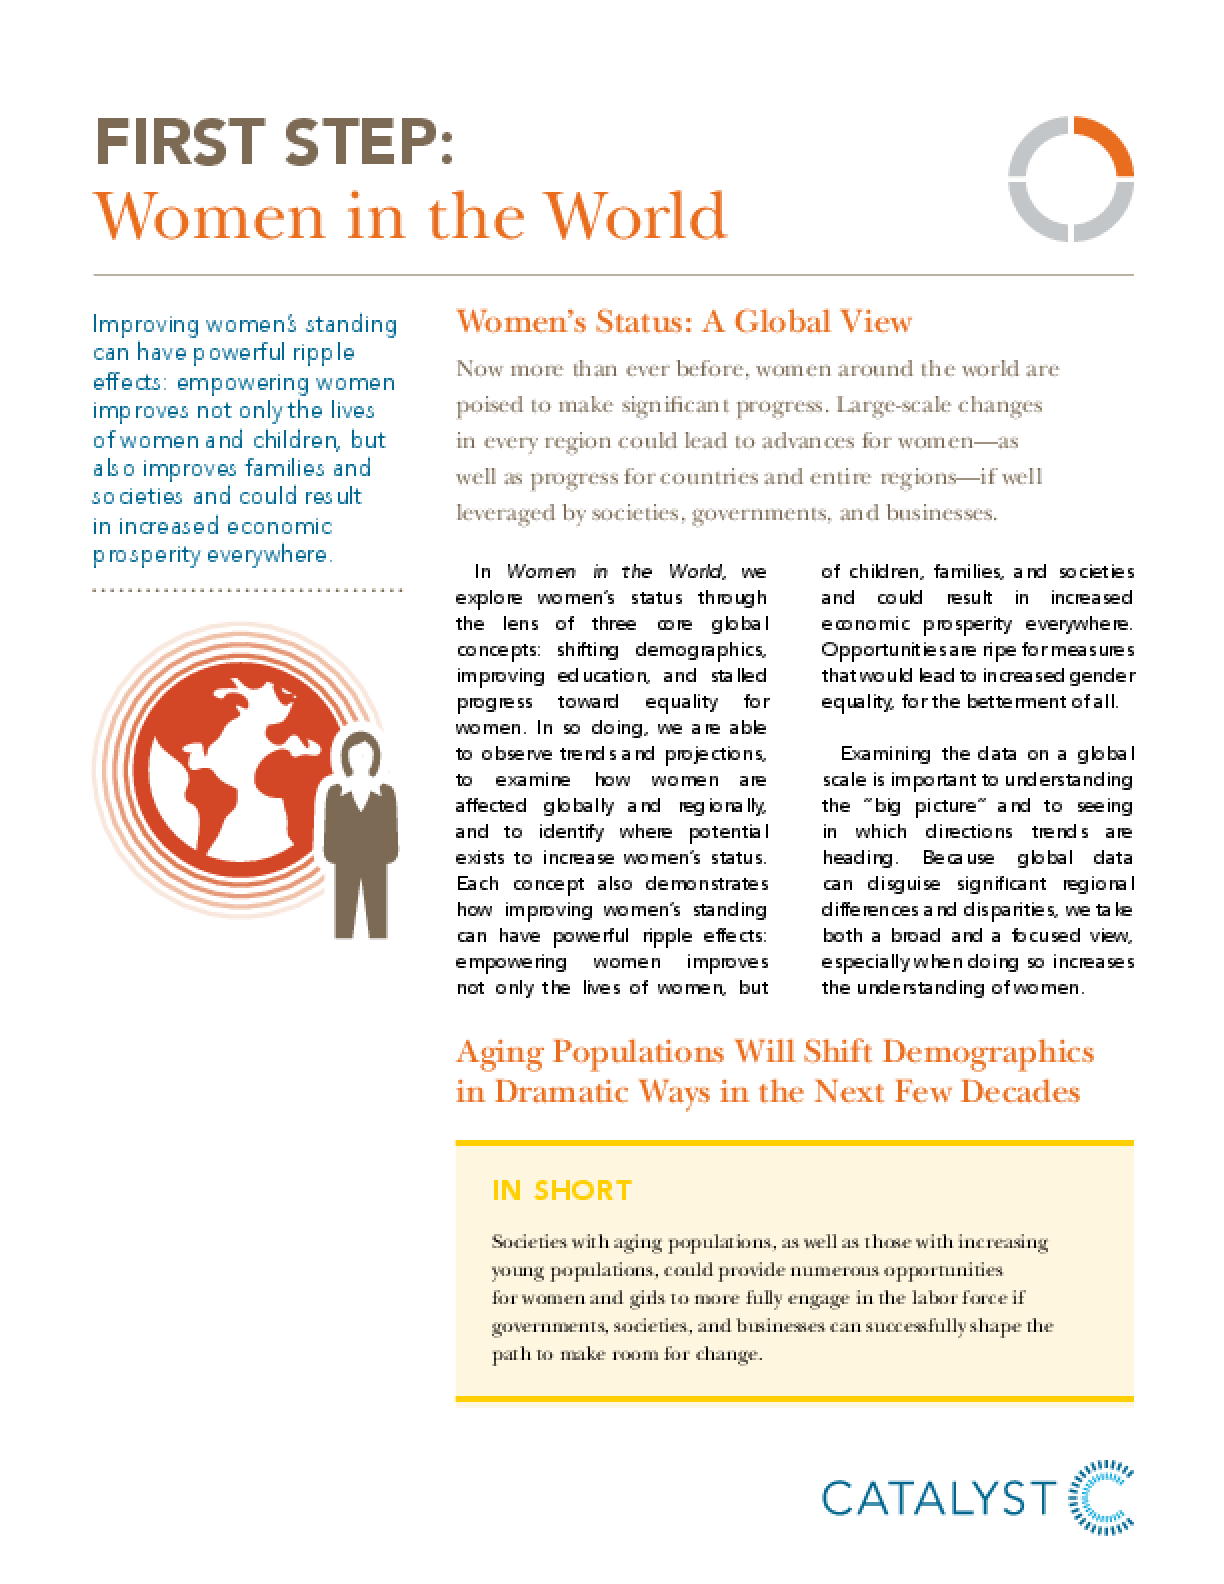 First Step: Women in the World